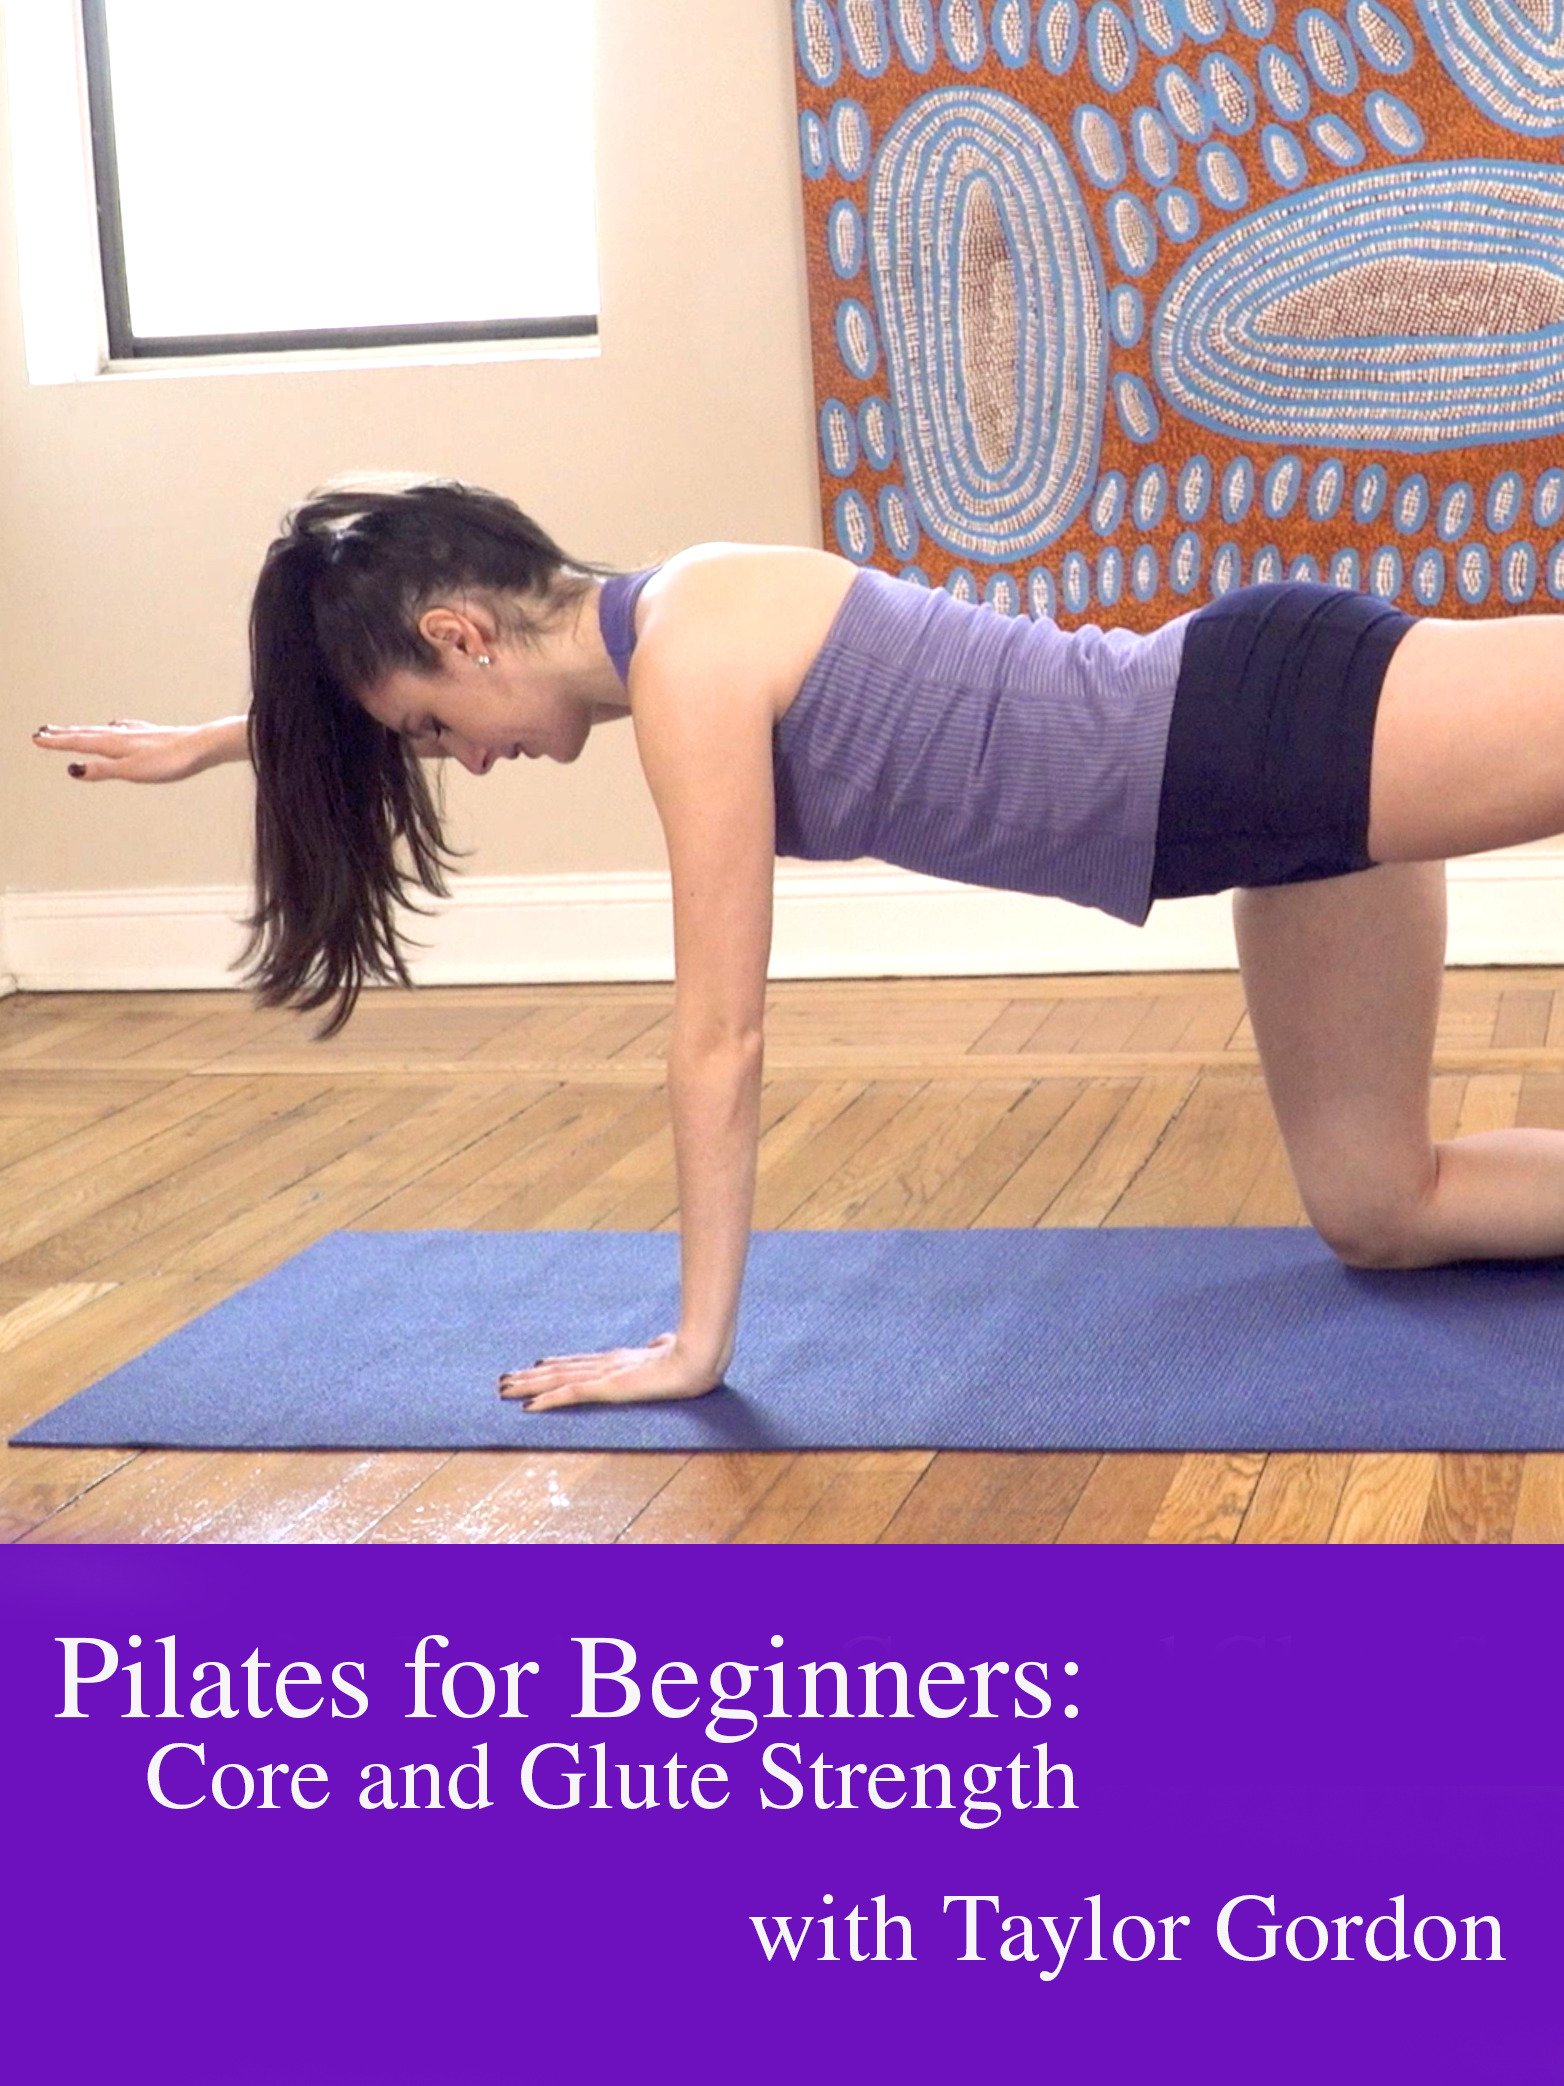 Pilates for Beginners: Core and Glute Strength with Taylor Gordon